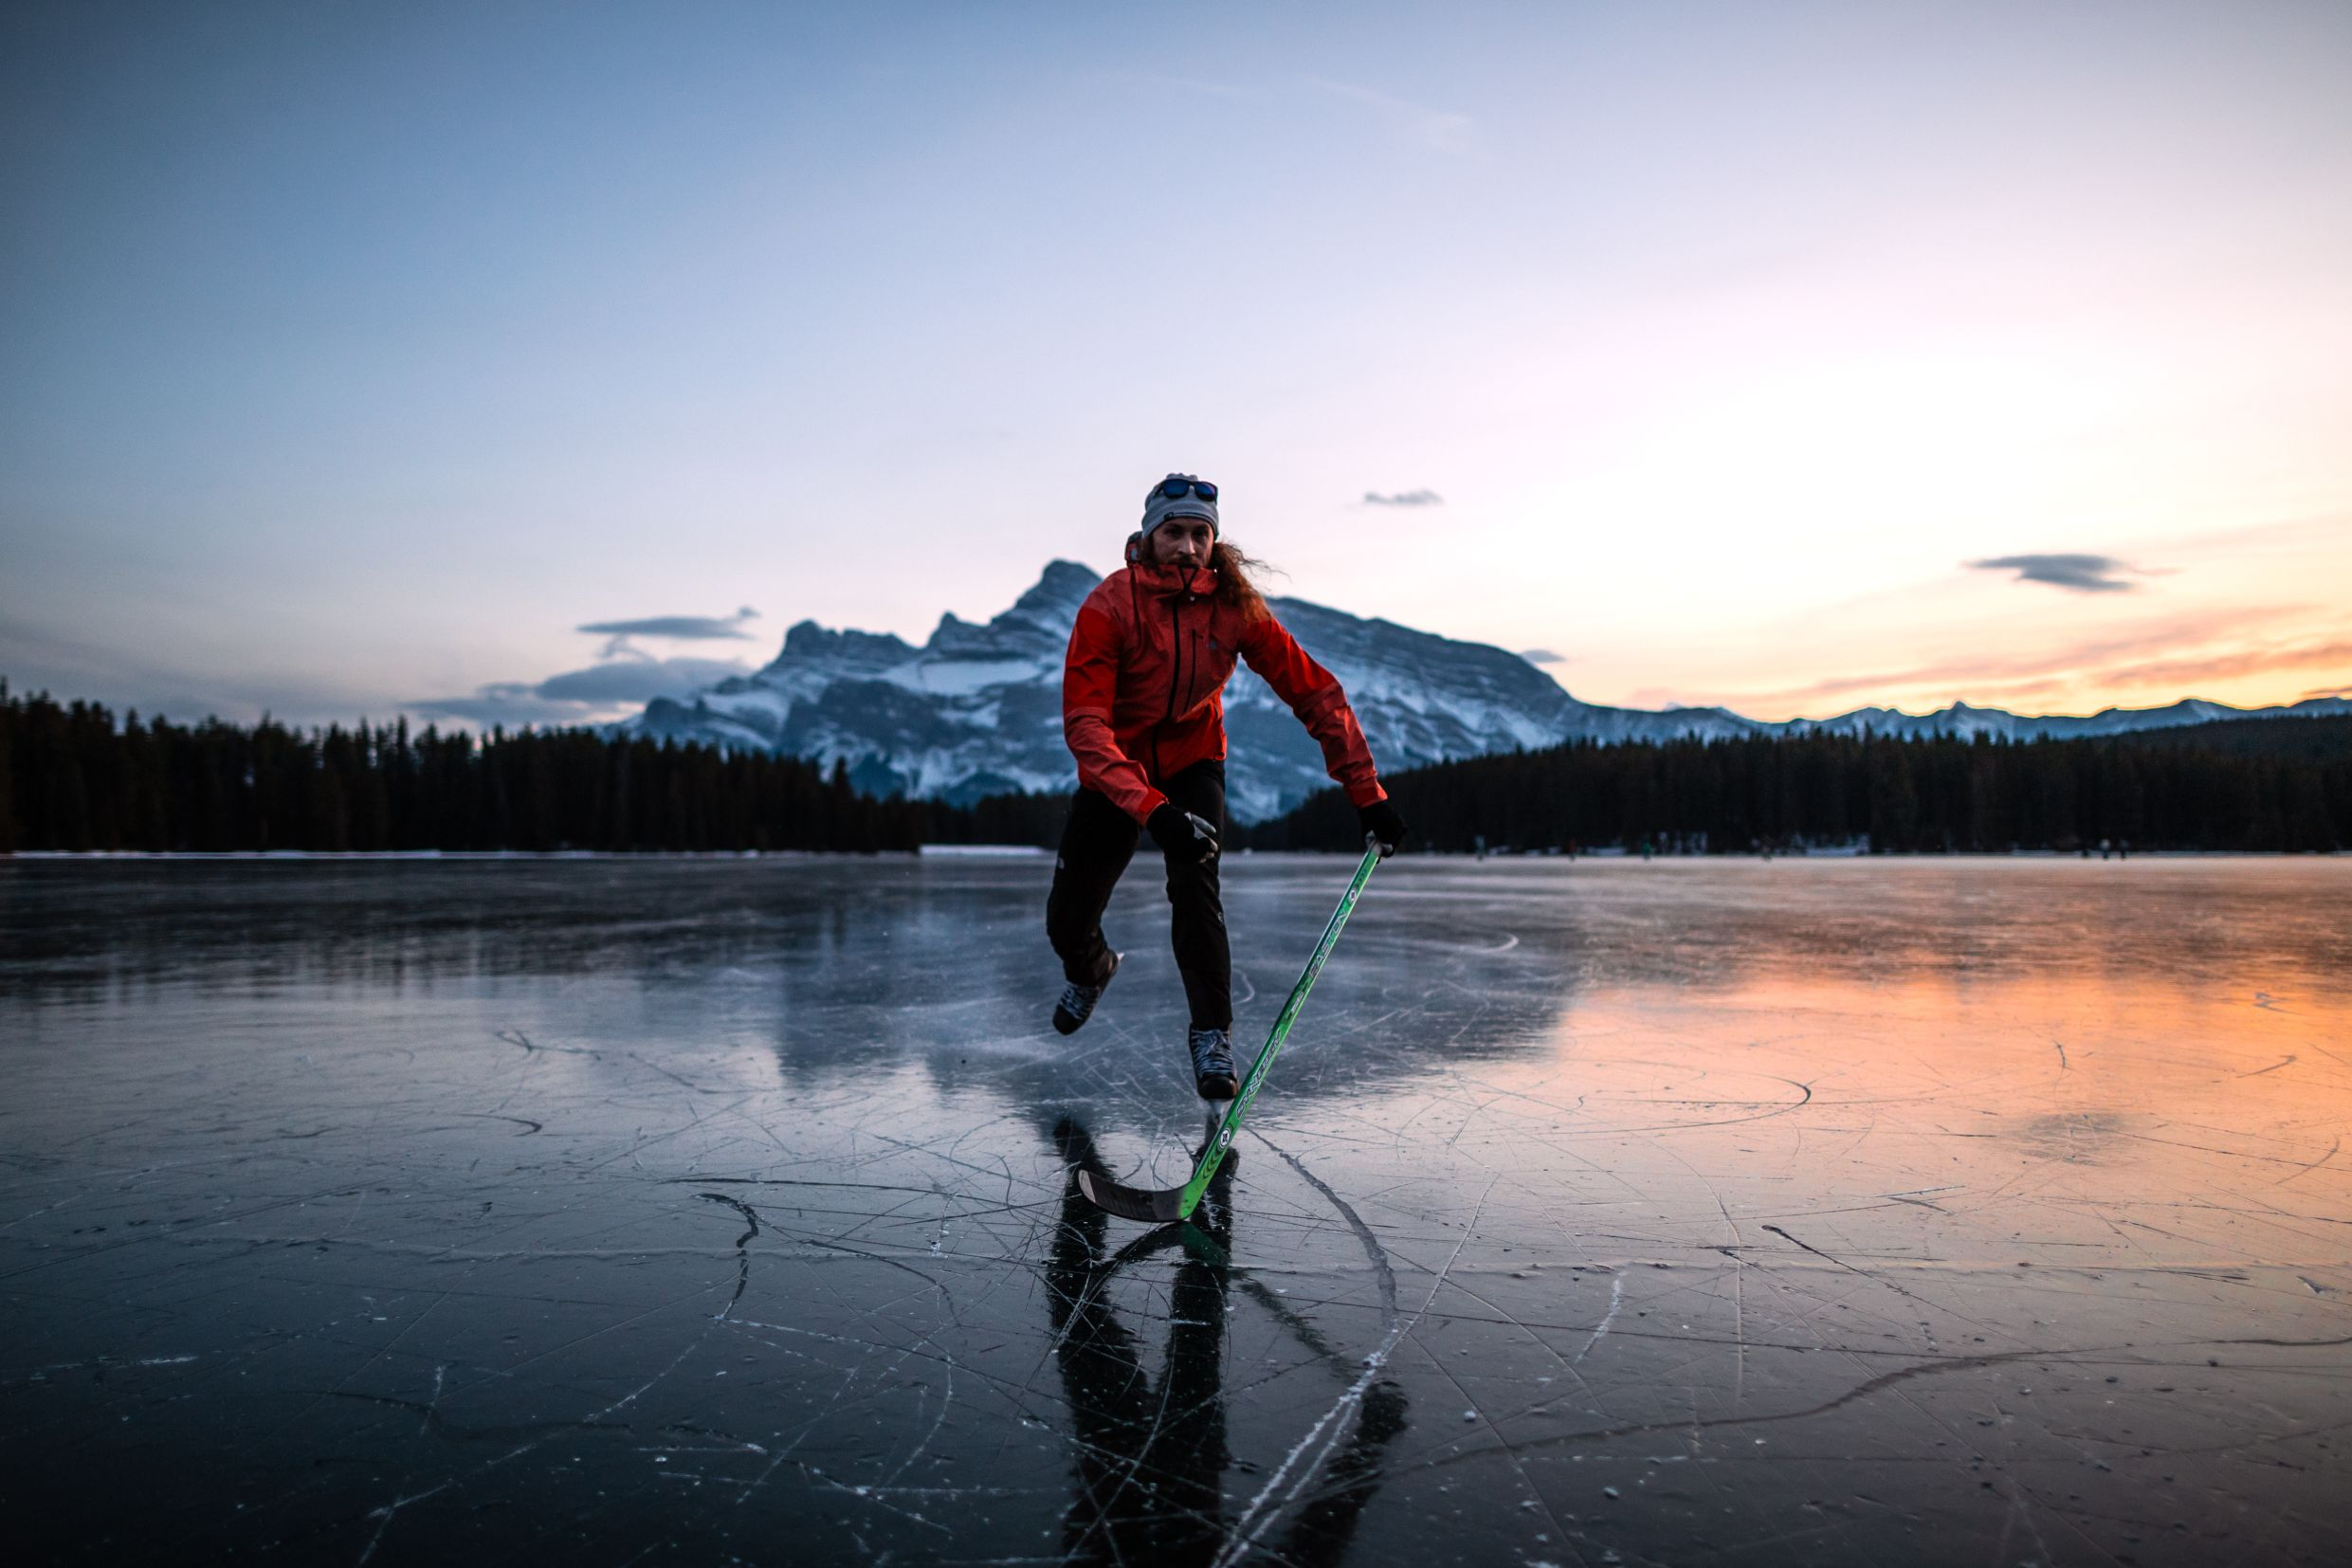 Ice skater on frozen Canadian lake.